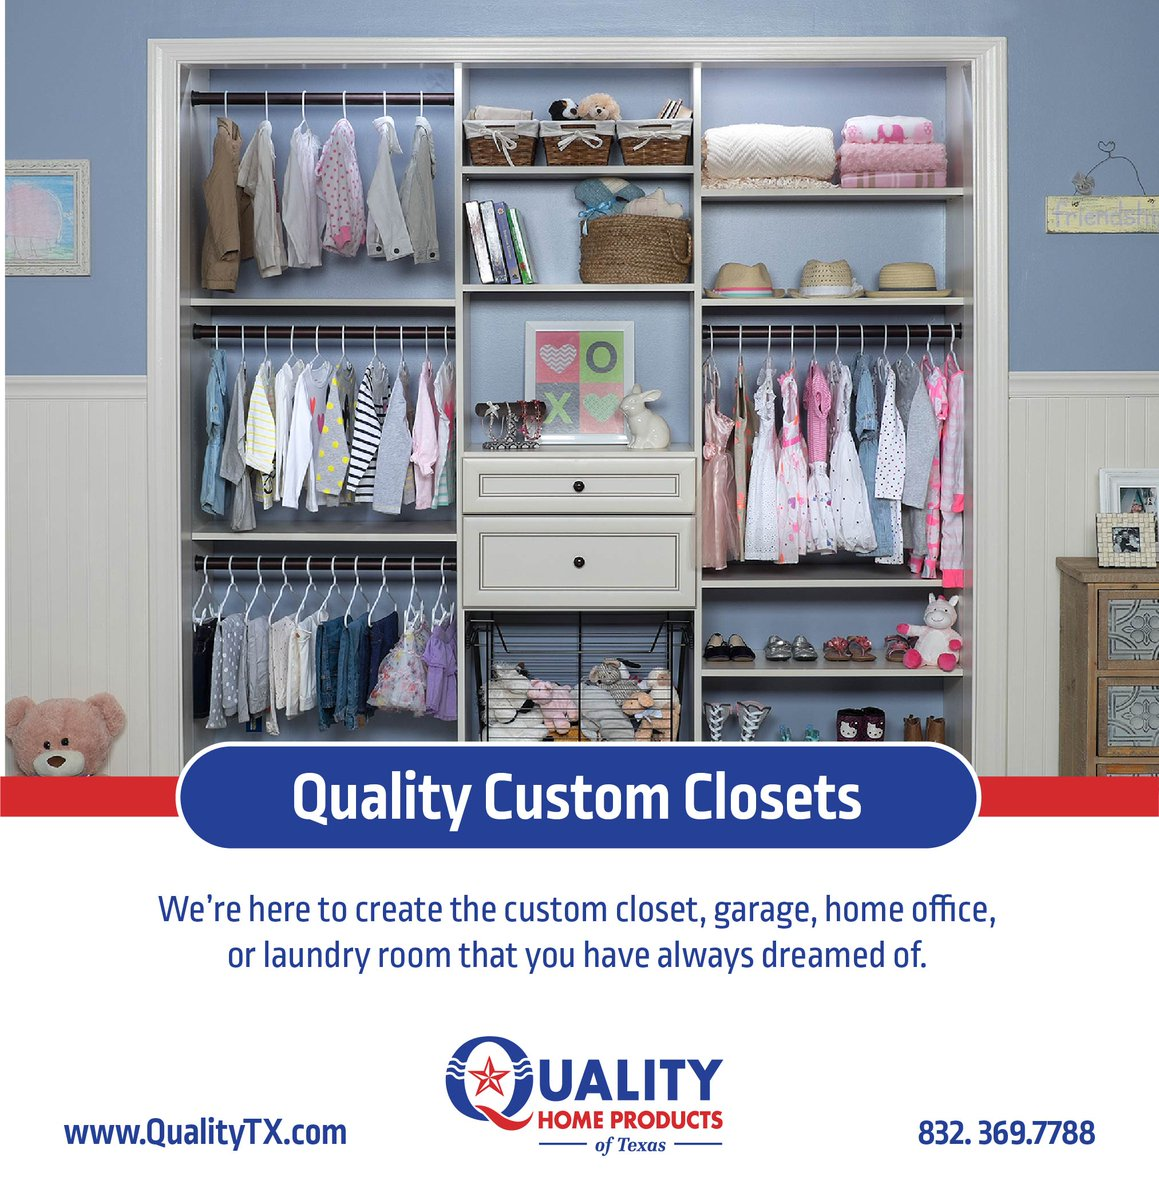 Quality Home Tx At Qualityhometx Twitter